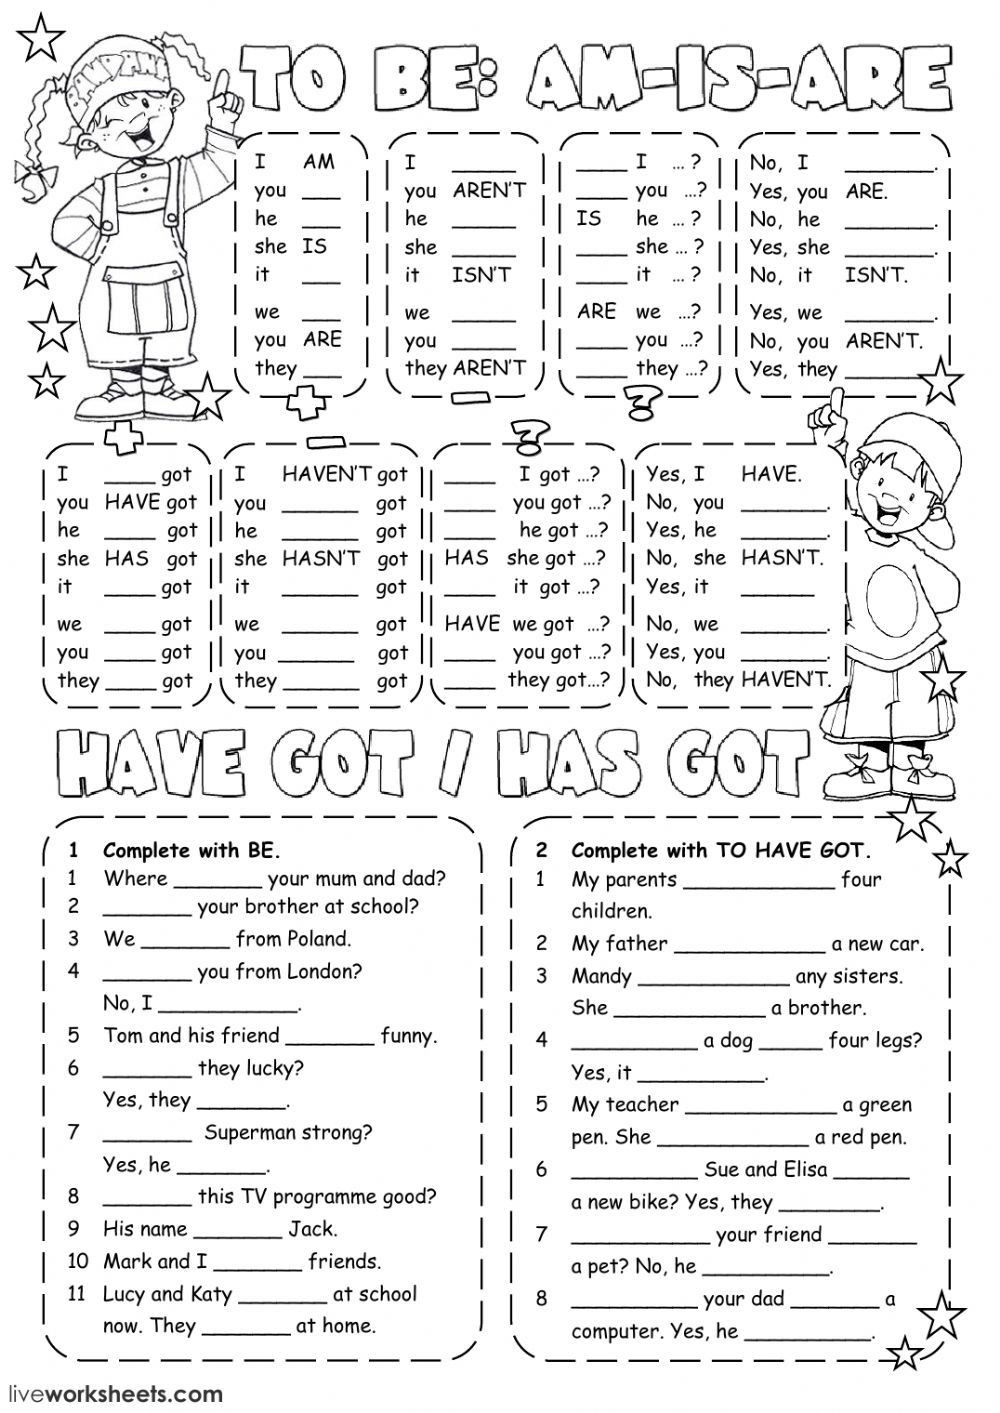 Verb Tense Worksheets 3rd Grade Verb to Be Interactive and Able Worksheet You Can